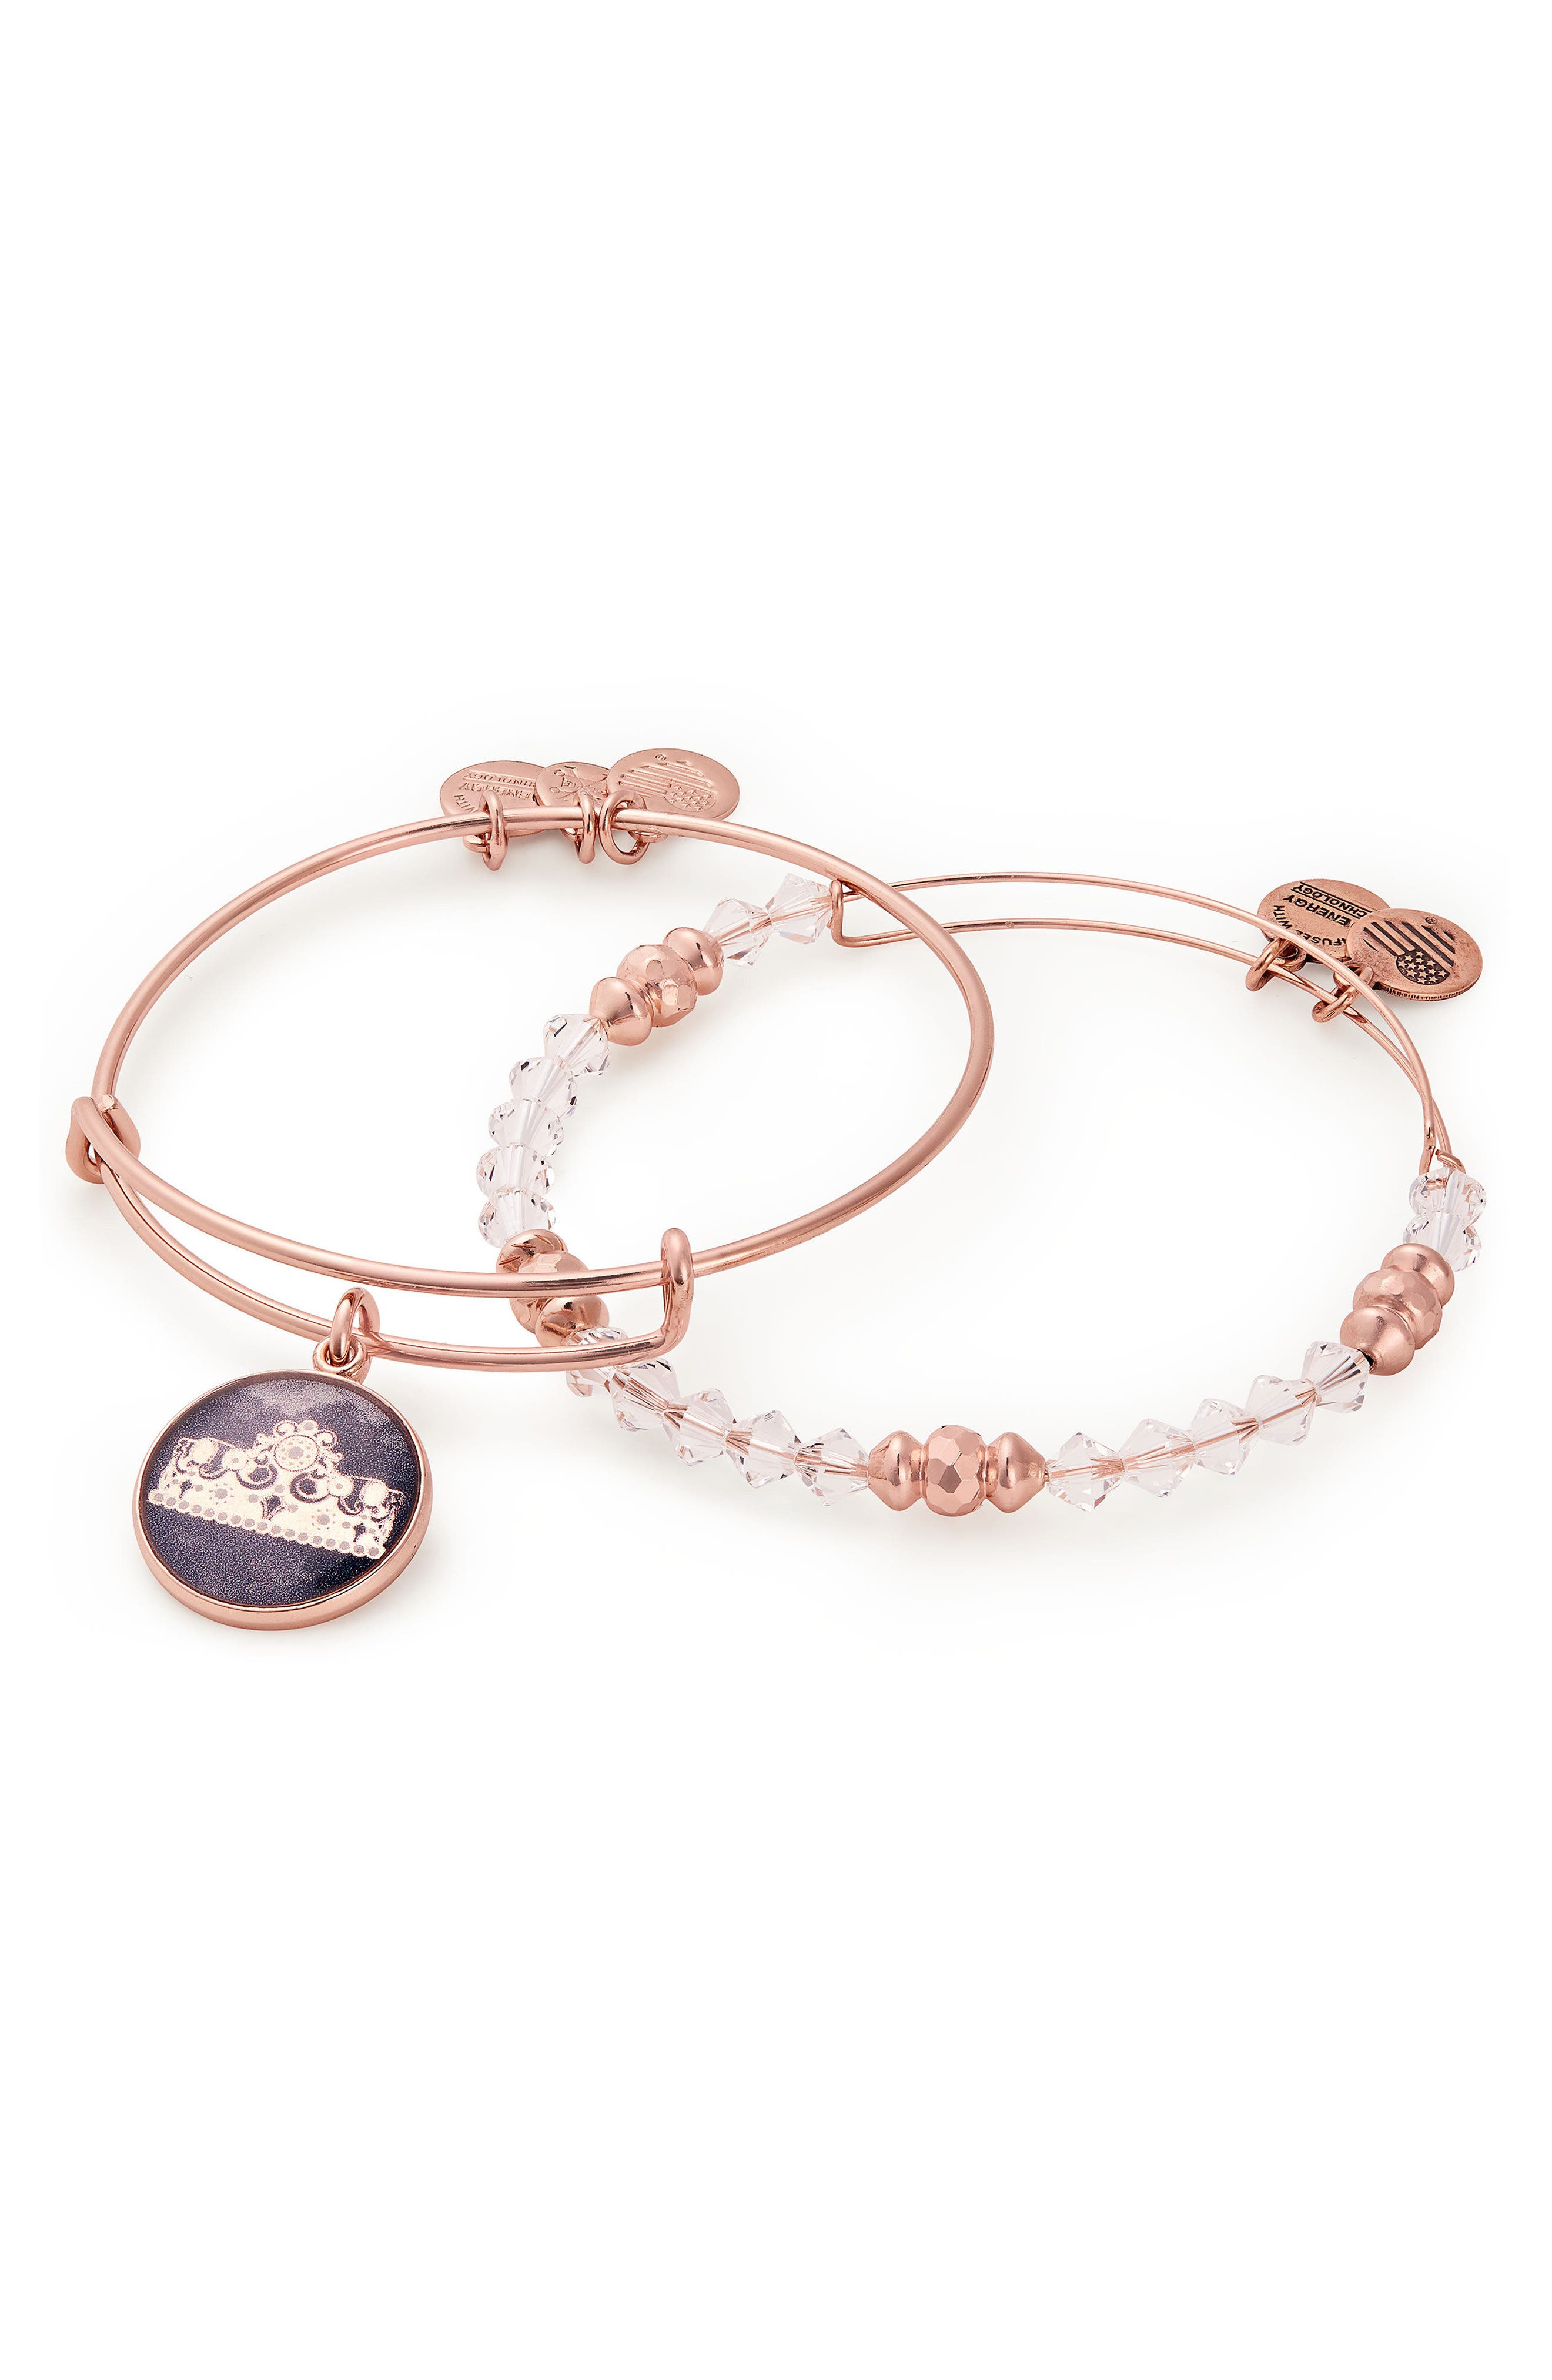 Queen's Crown Set of 2 Adjustable Wire Bangles,                             Main thumbnail 1, color,                             Rose Gold